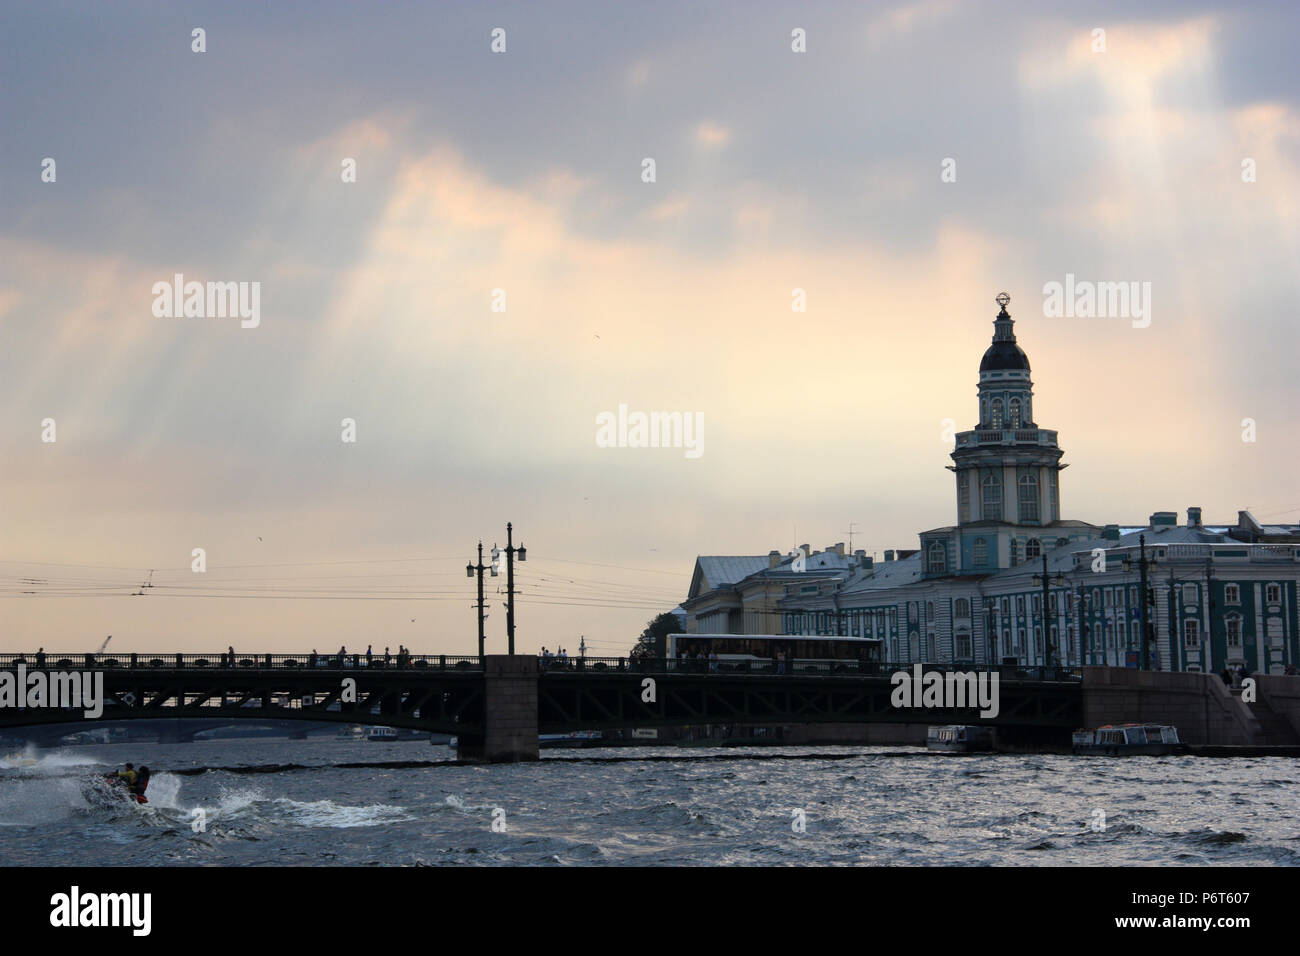 Dramatic sky over the Kunstkamera, Russia's first museum and funded by Peter the Great, in St. Petersburg, Russia - Stock Image